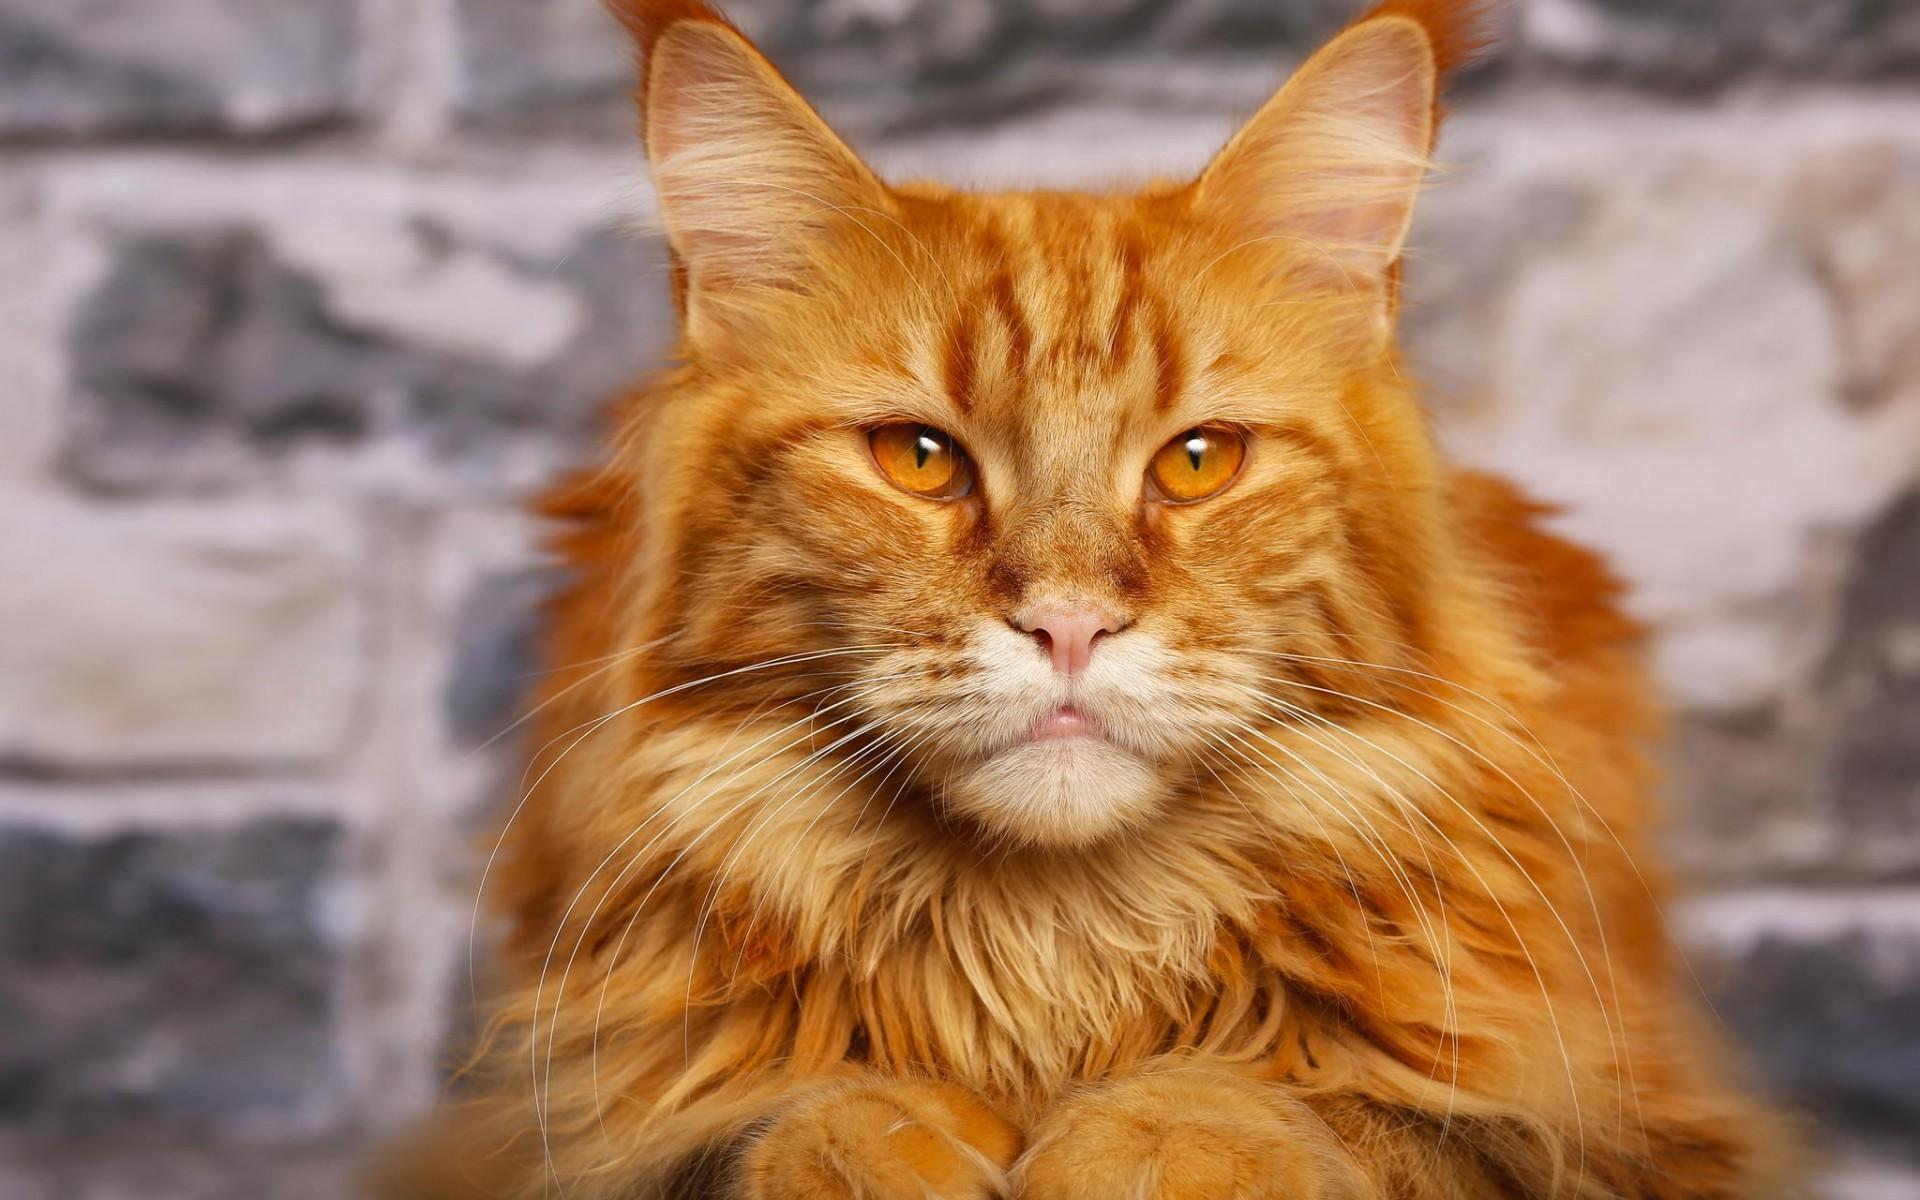 Where Do You Find Orange Maine Coon Kittens For Sale?